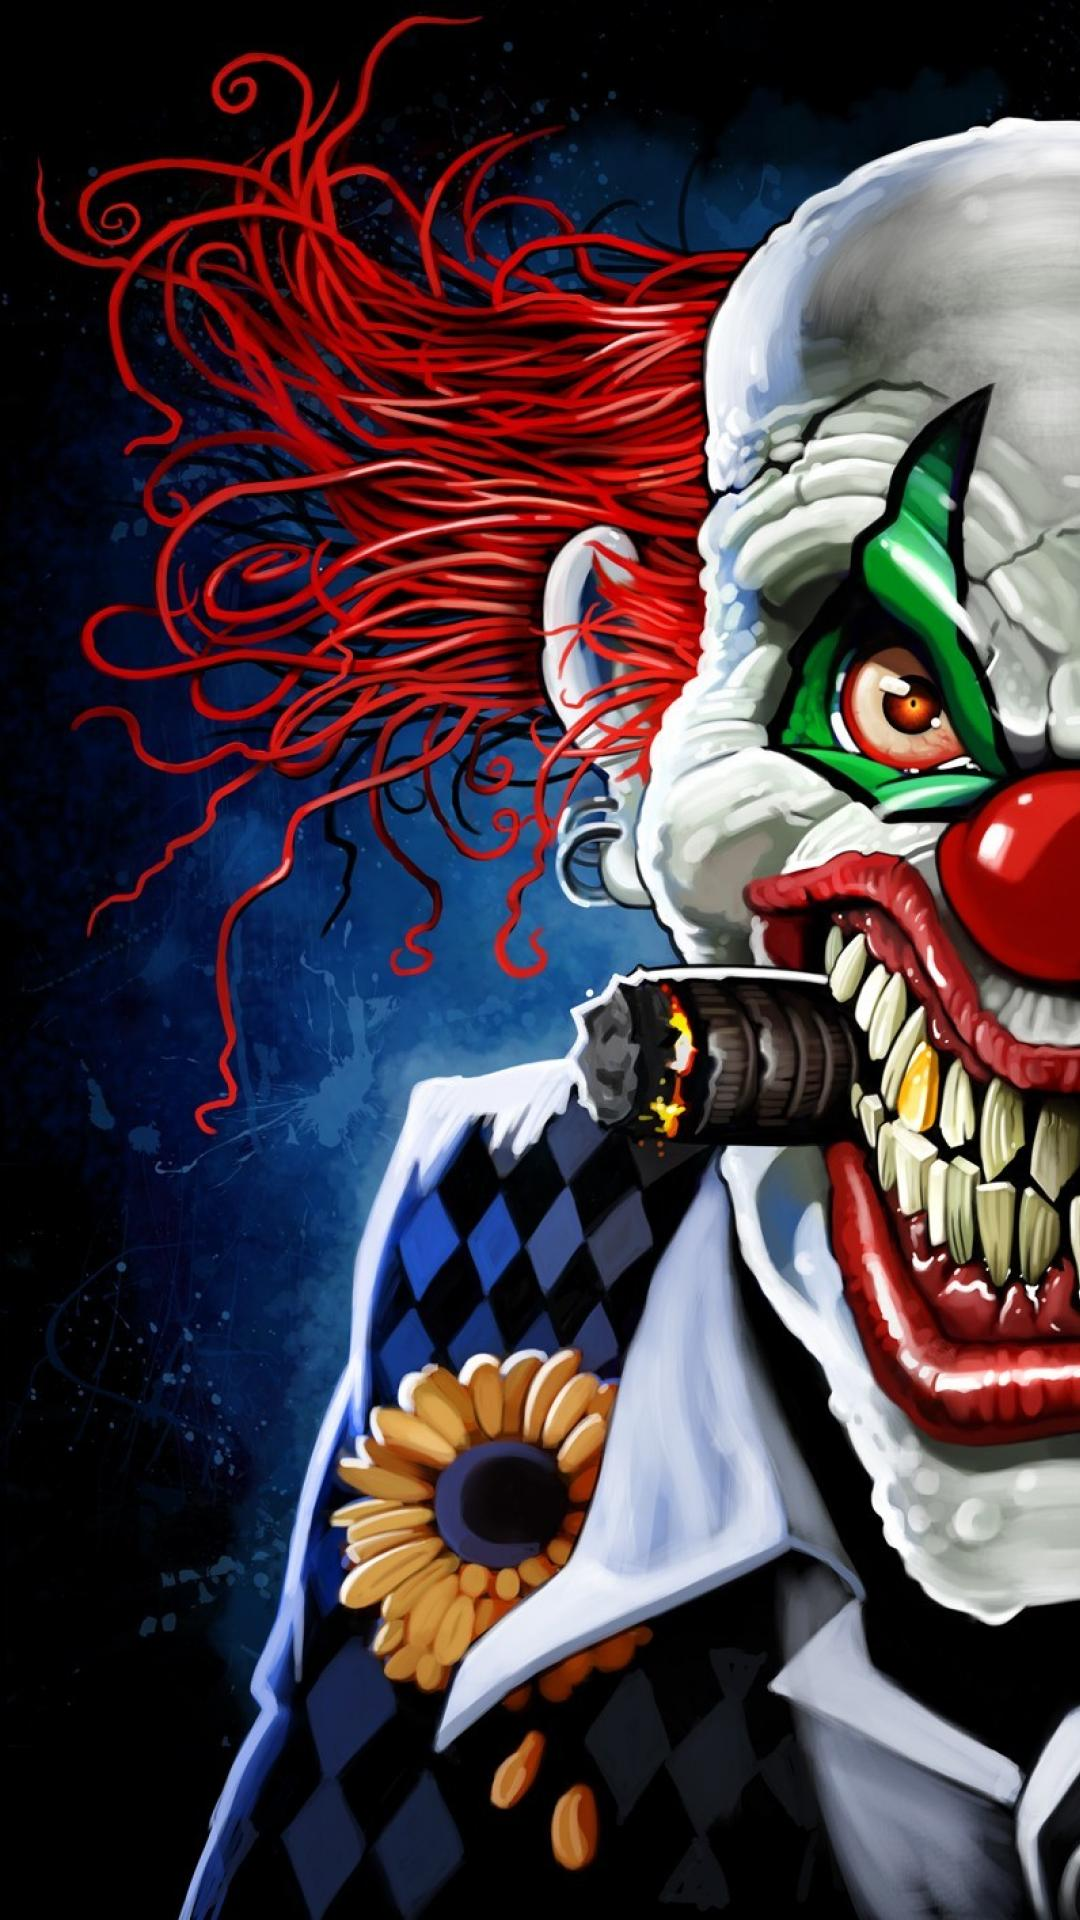 Top Five Wallpaper Gambar Joker Keren 3d